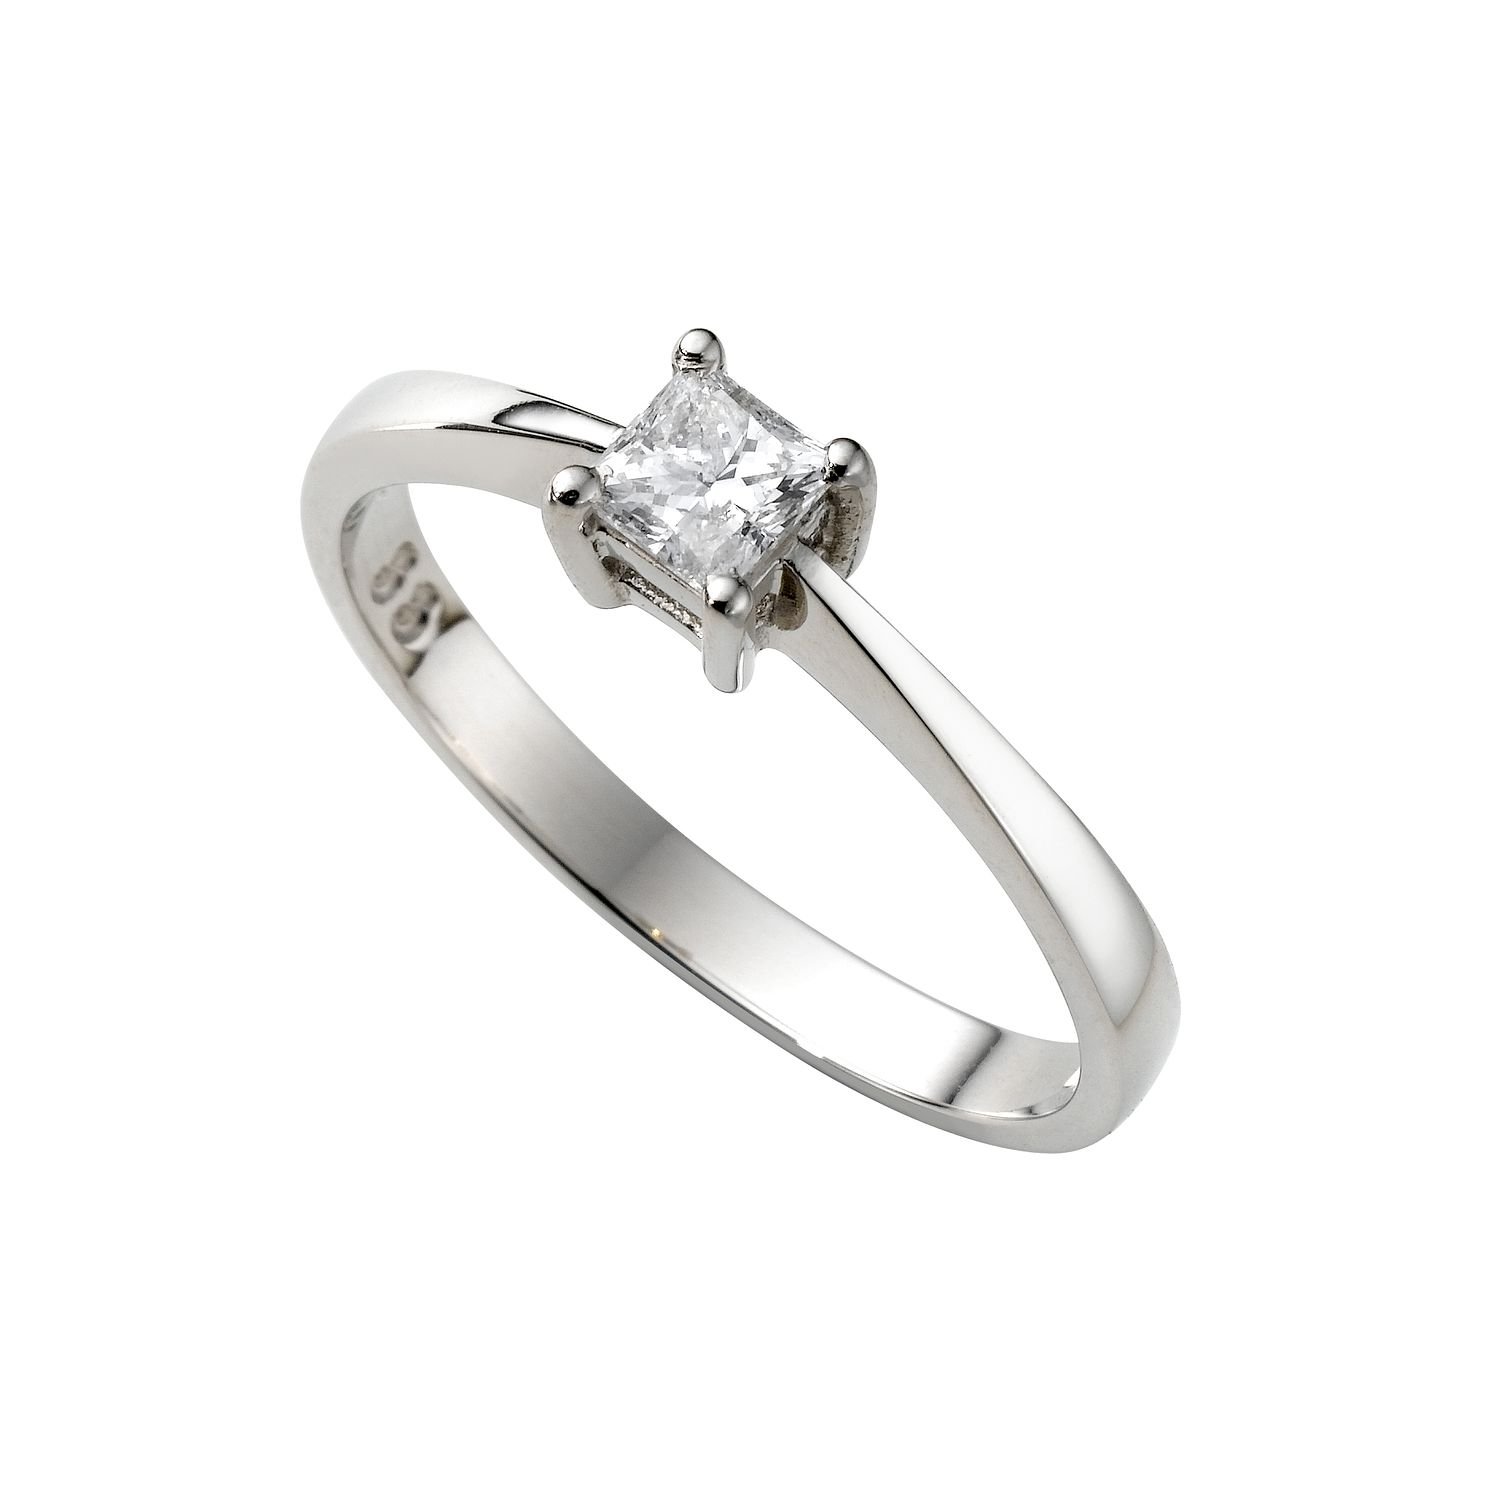 diamond carat wantmydiamond certified ring solitaire oval shape gia in product hand carved engagement cut platinum